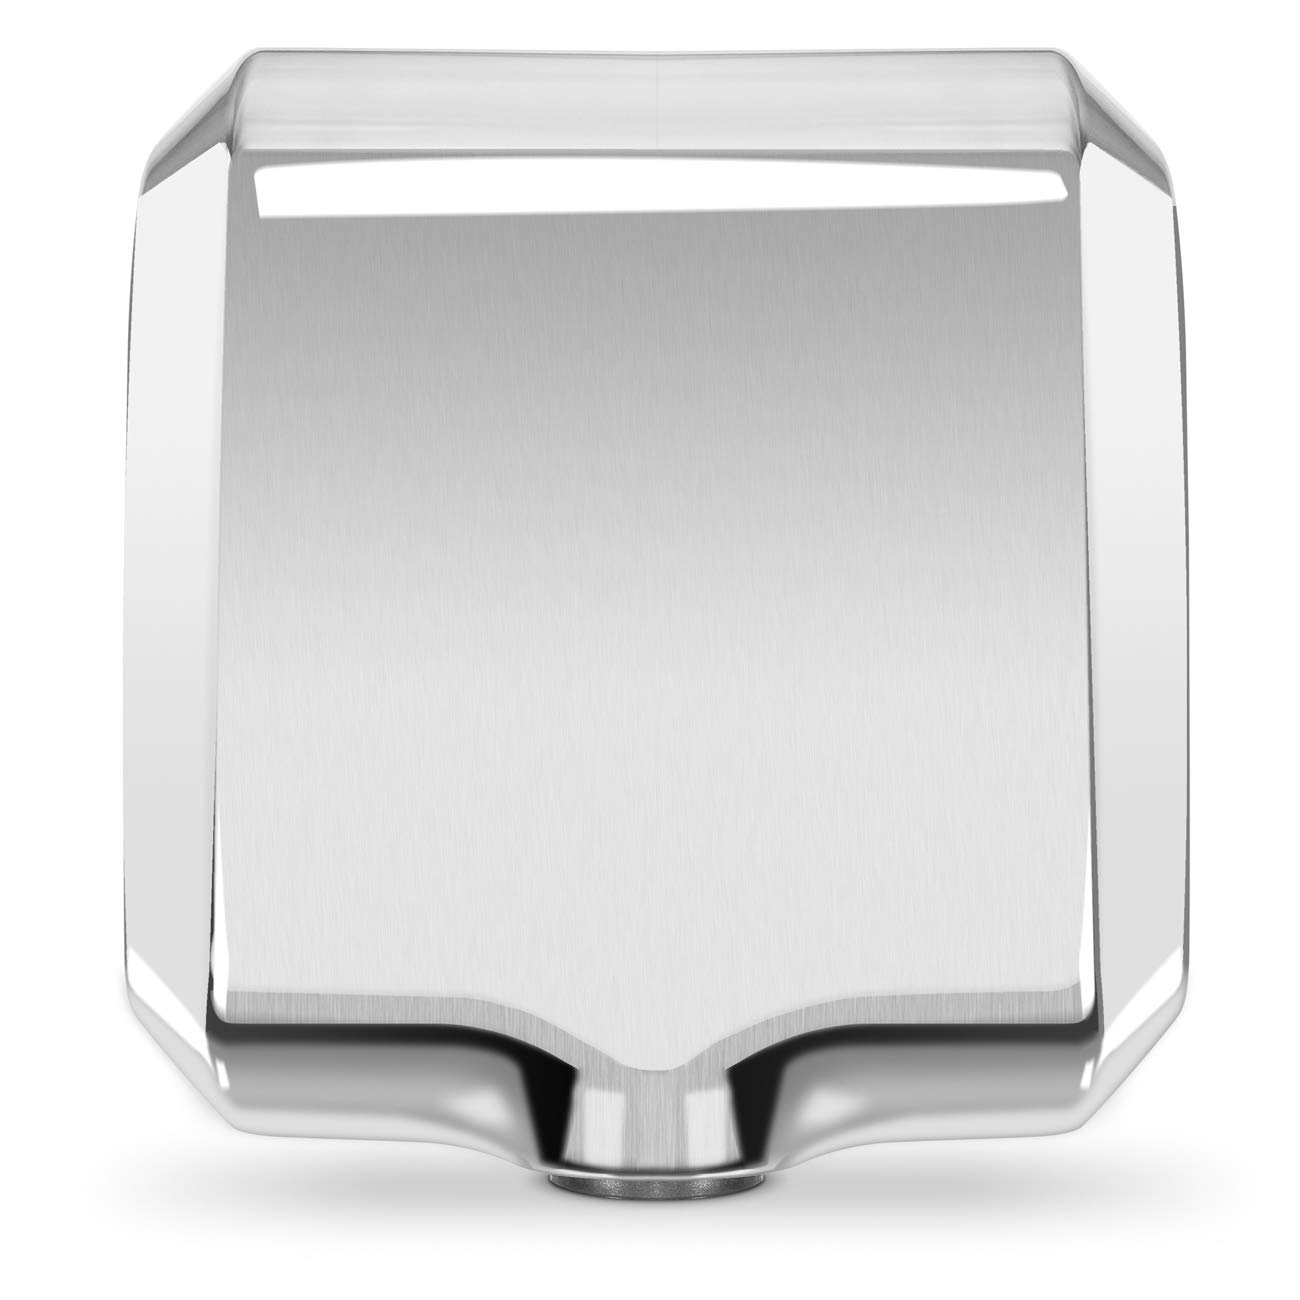 ARKSEN Automatic Hand Dryer for Home or Commercial Bathrooms Restaurant, Powerful 1650W, Dry Hands in 8 s, Low Noise 70